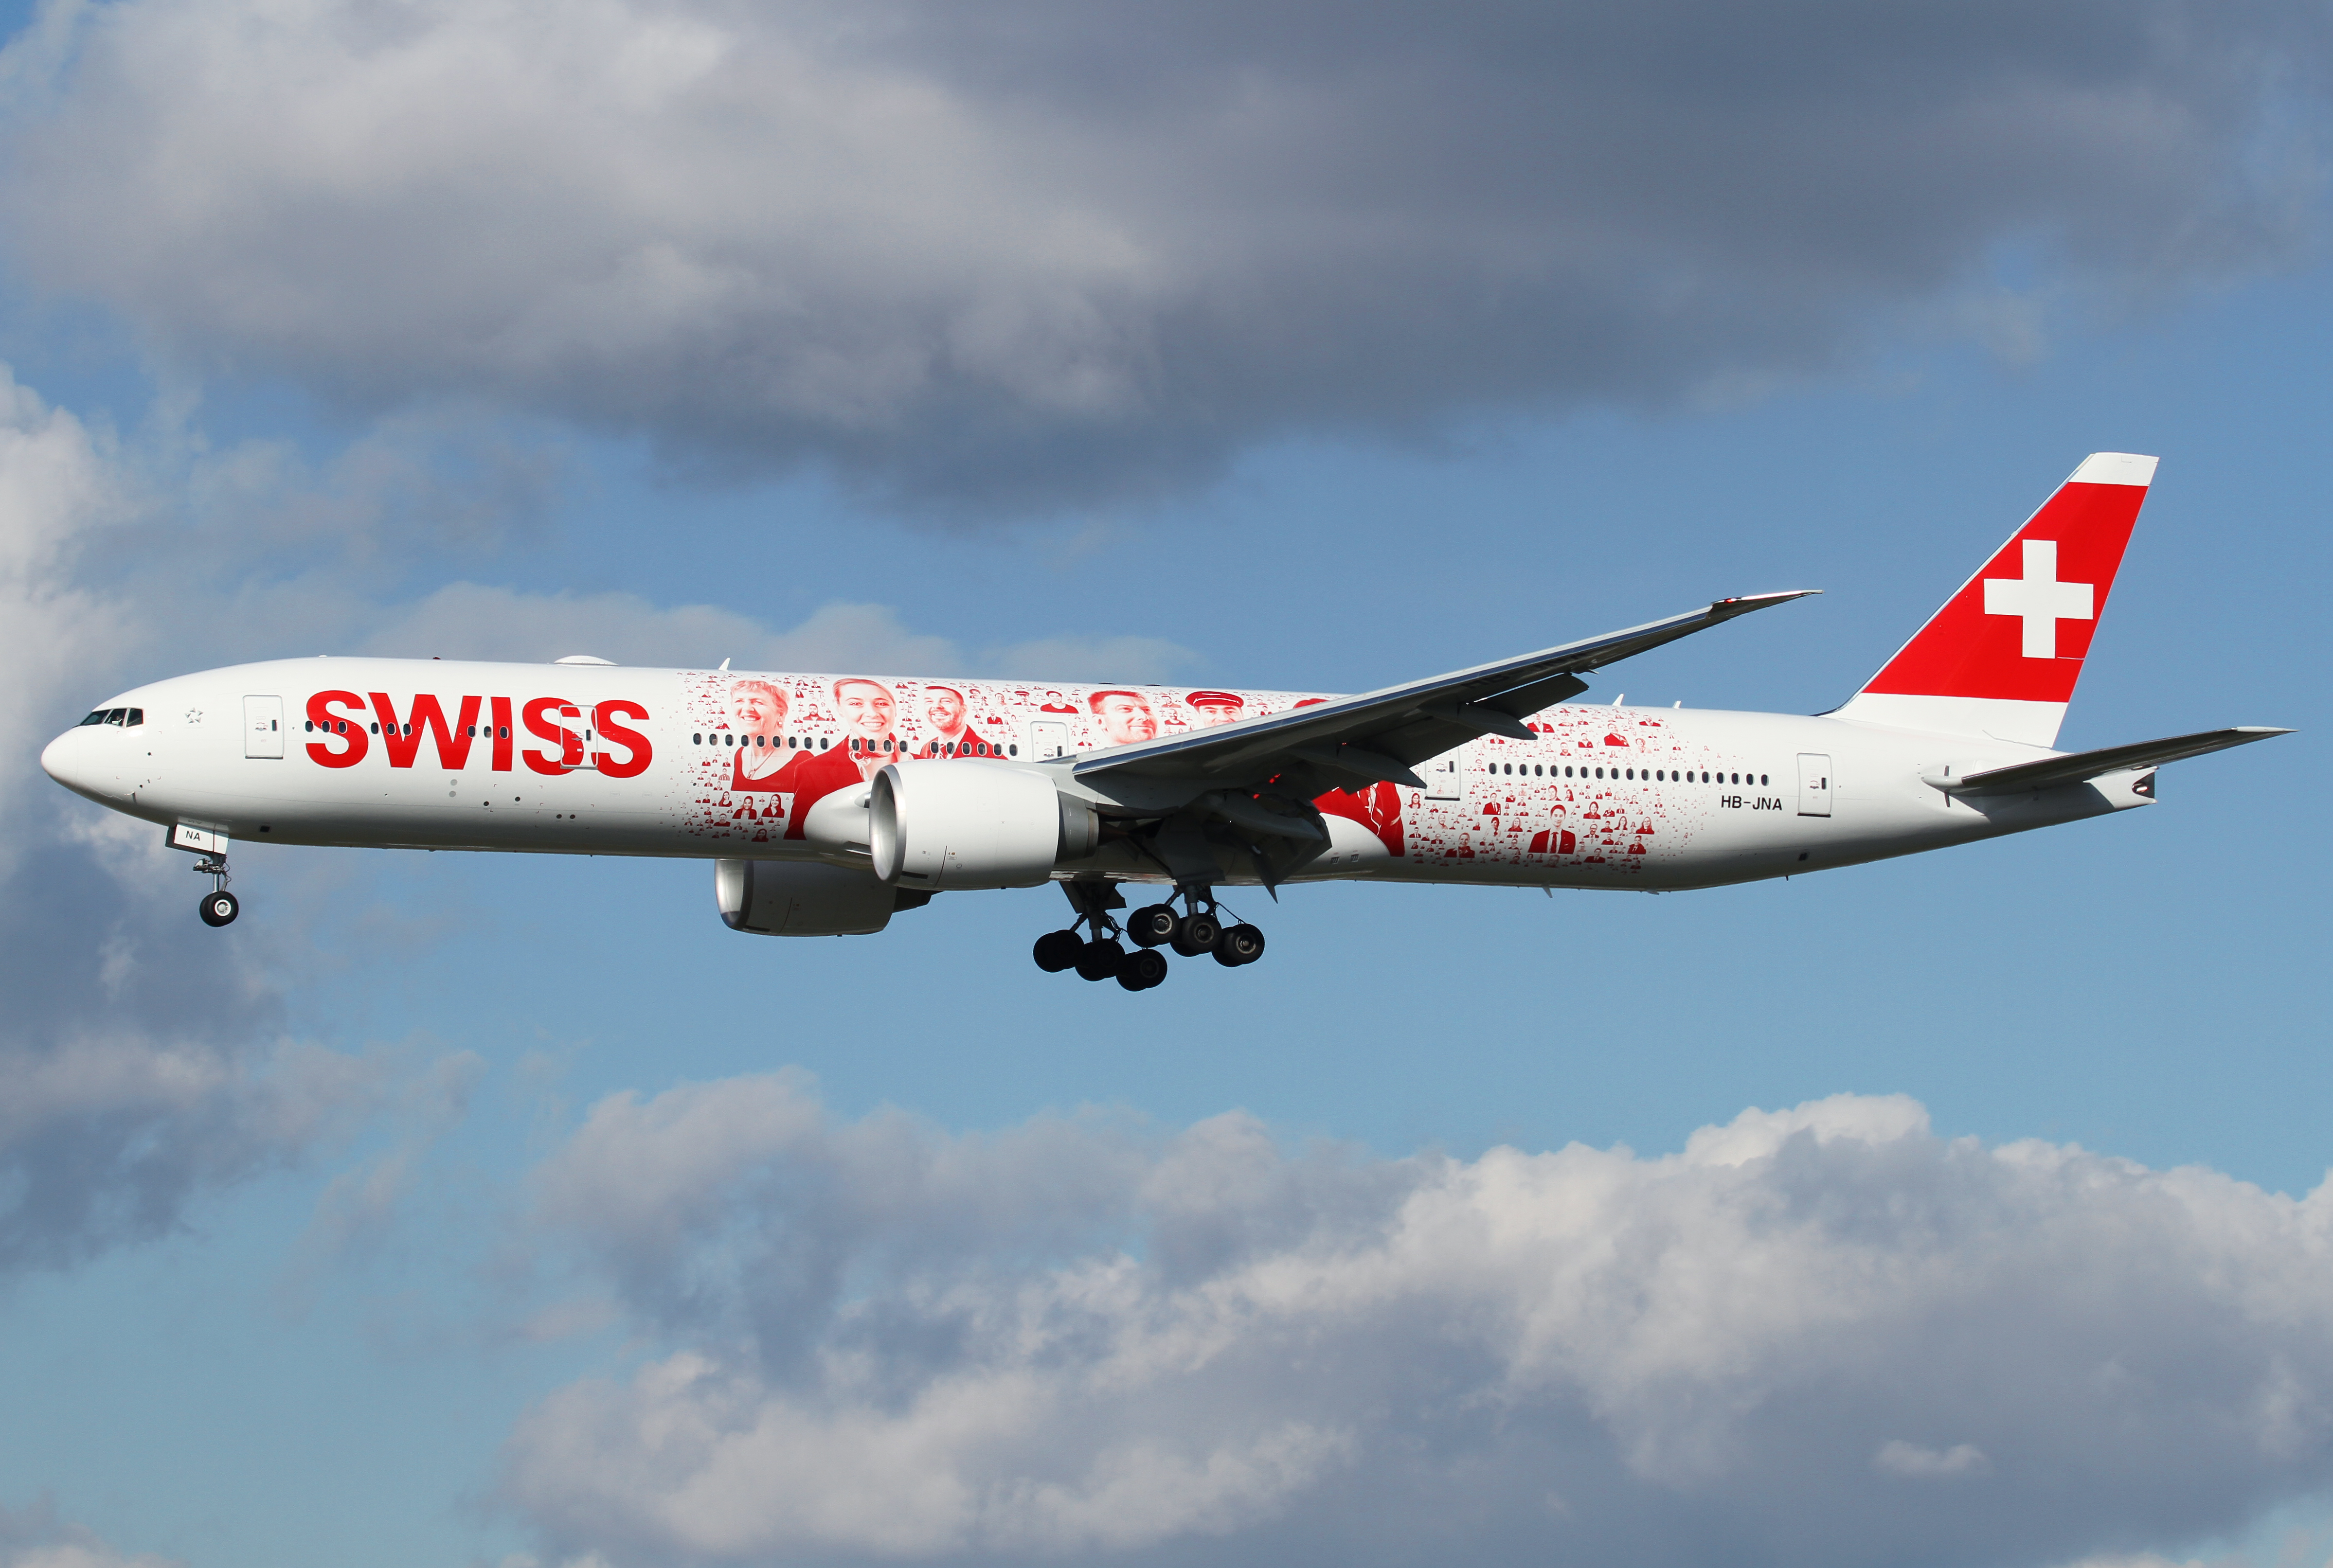 Second attempt for me to catch the new flagship of SWISS. This time it worked out great with perfect light conditions. Short final for RWY25L inbound from Zurich ZRH as LX1072 on another crew training flight. Aircraft delivered January 28th, 2016.